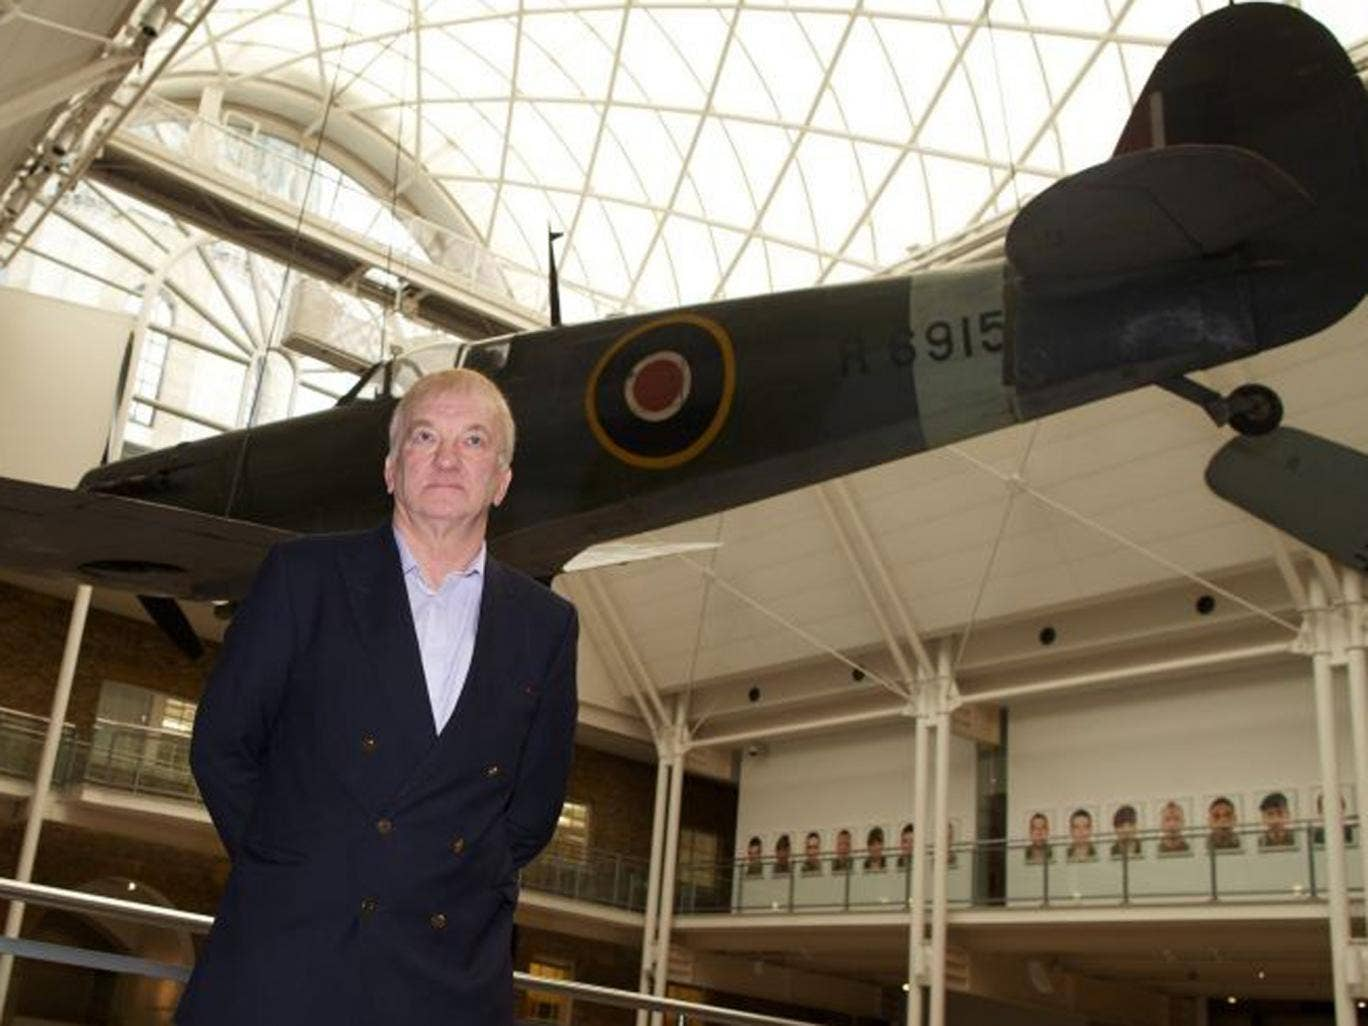 Farmer and aviation enthusiast David Cundall, from Lincolnshire, is spearheading the dig, having spent 17 years and thousands of pounds researching the project